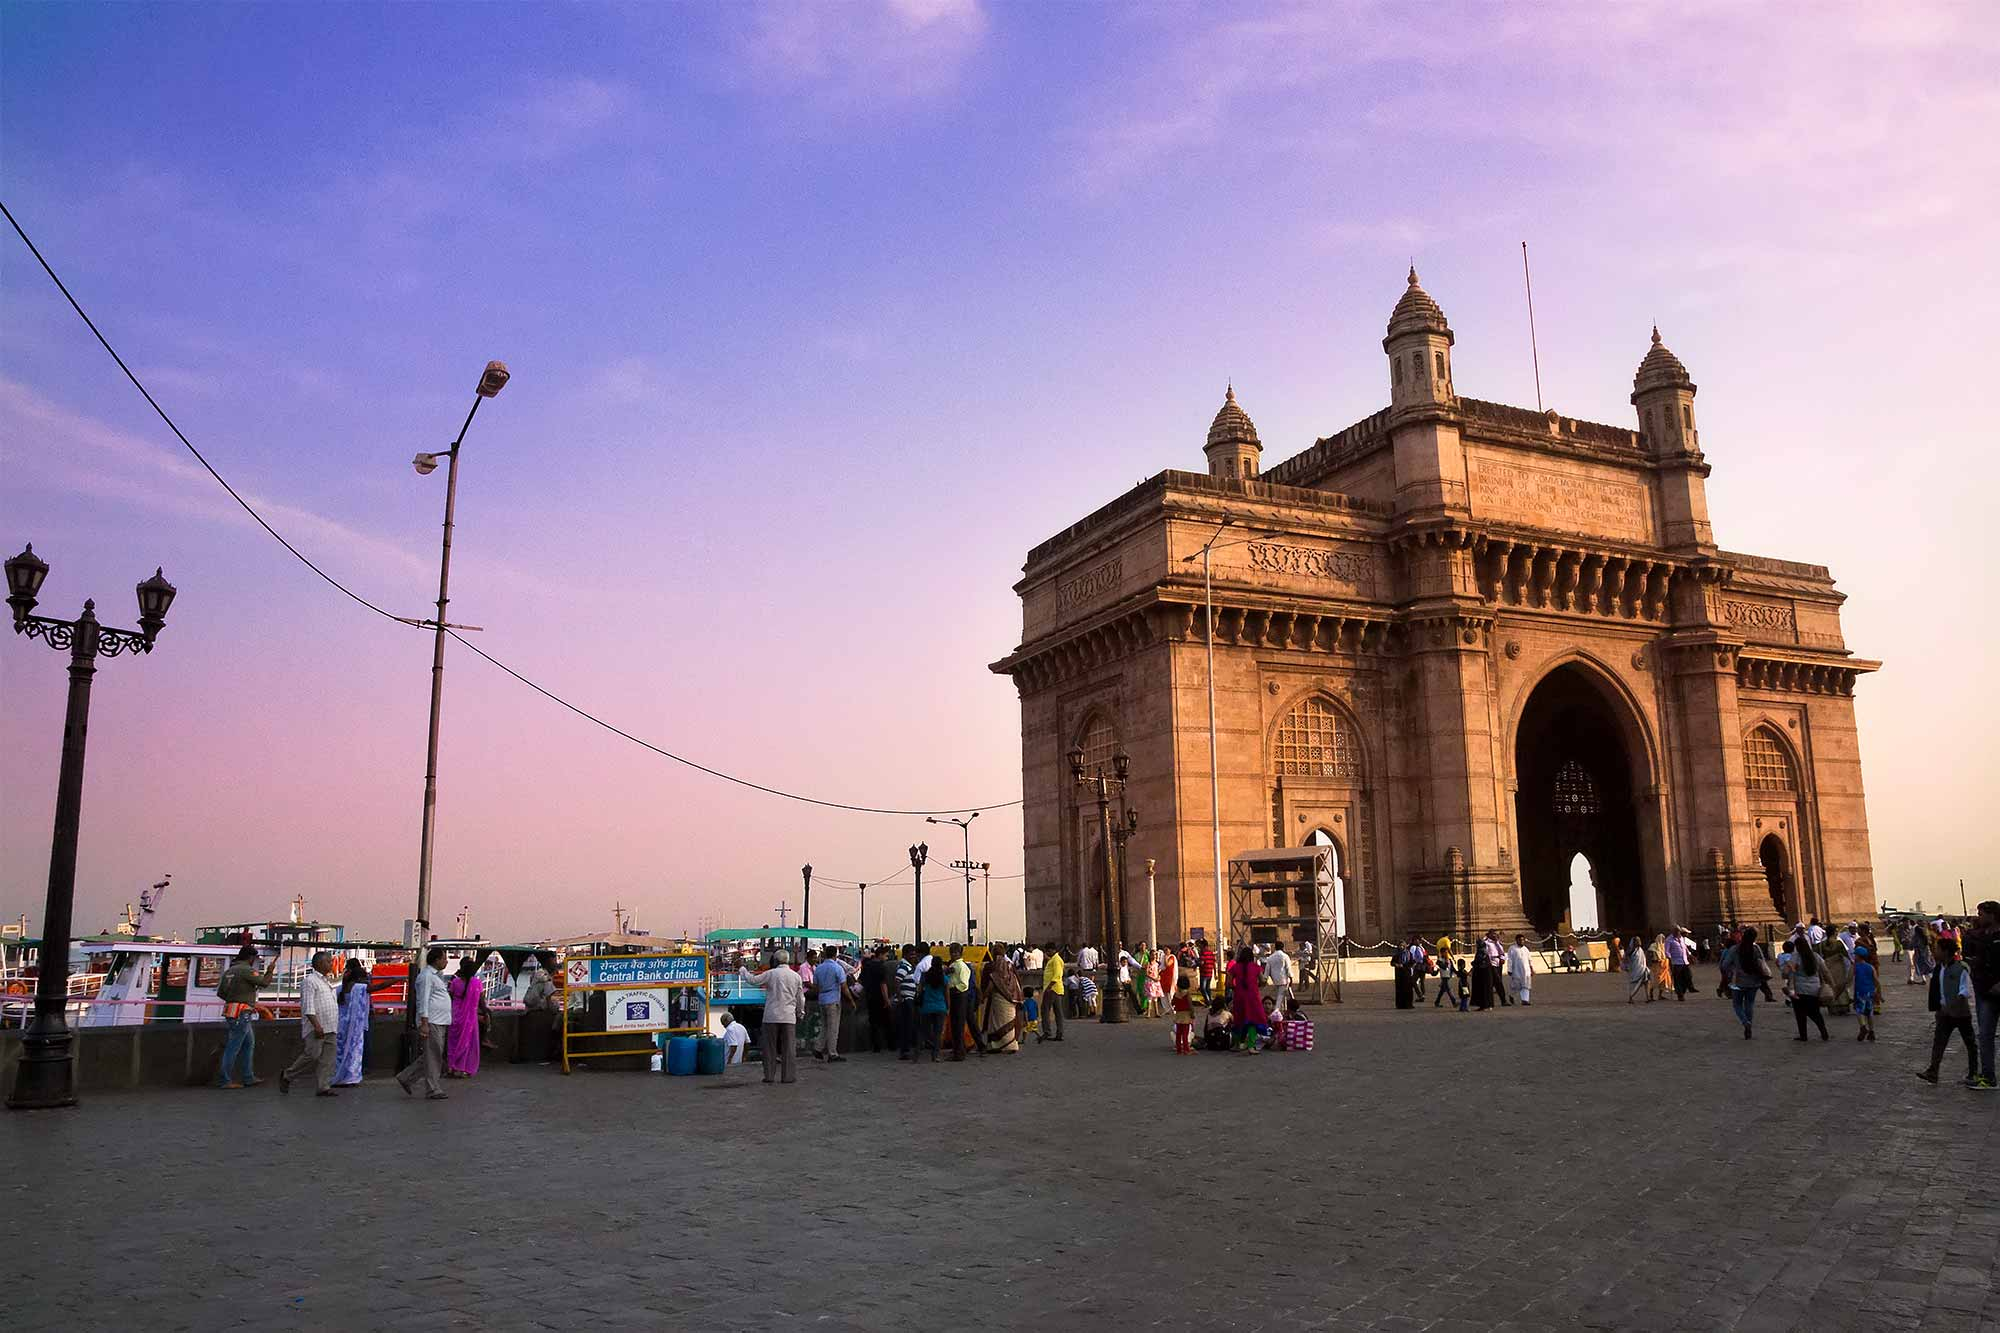 gateway-of-india-mumbai-india-2